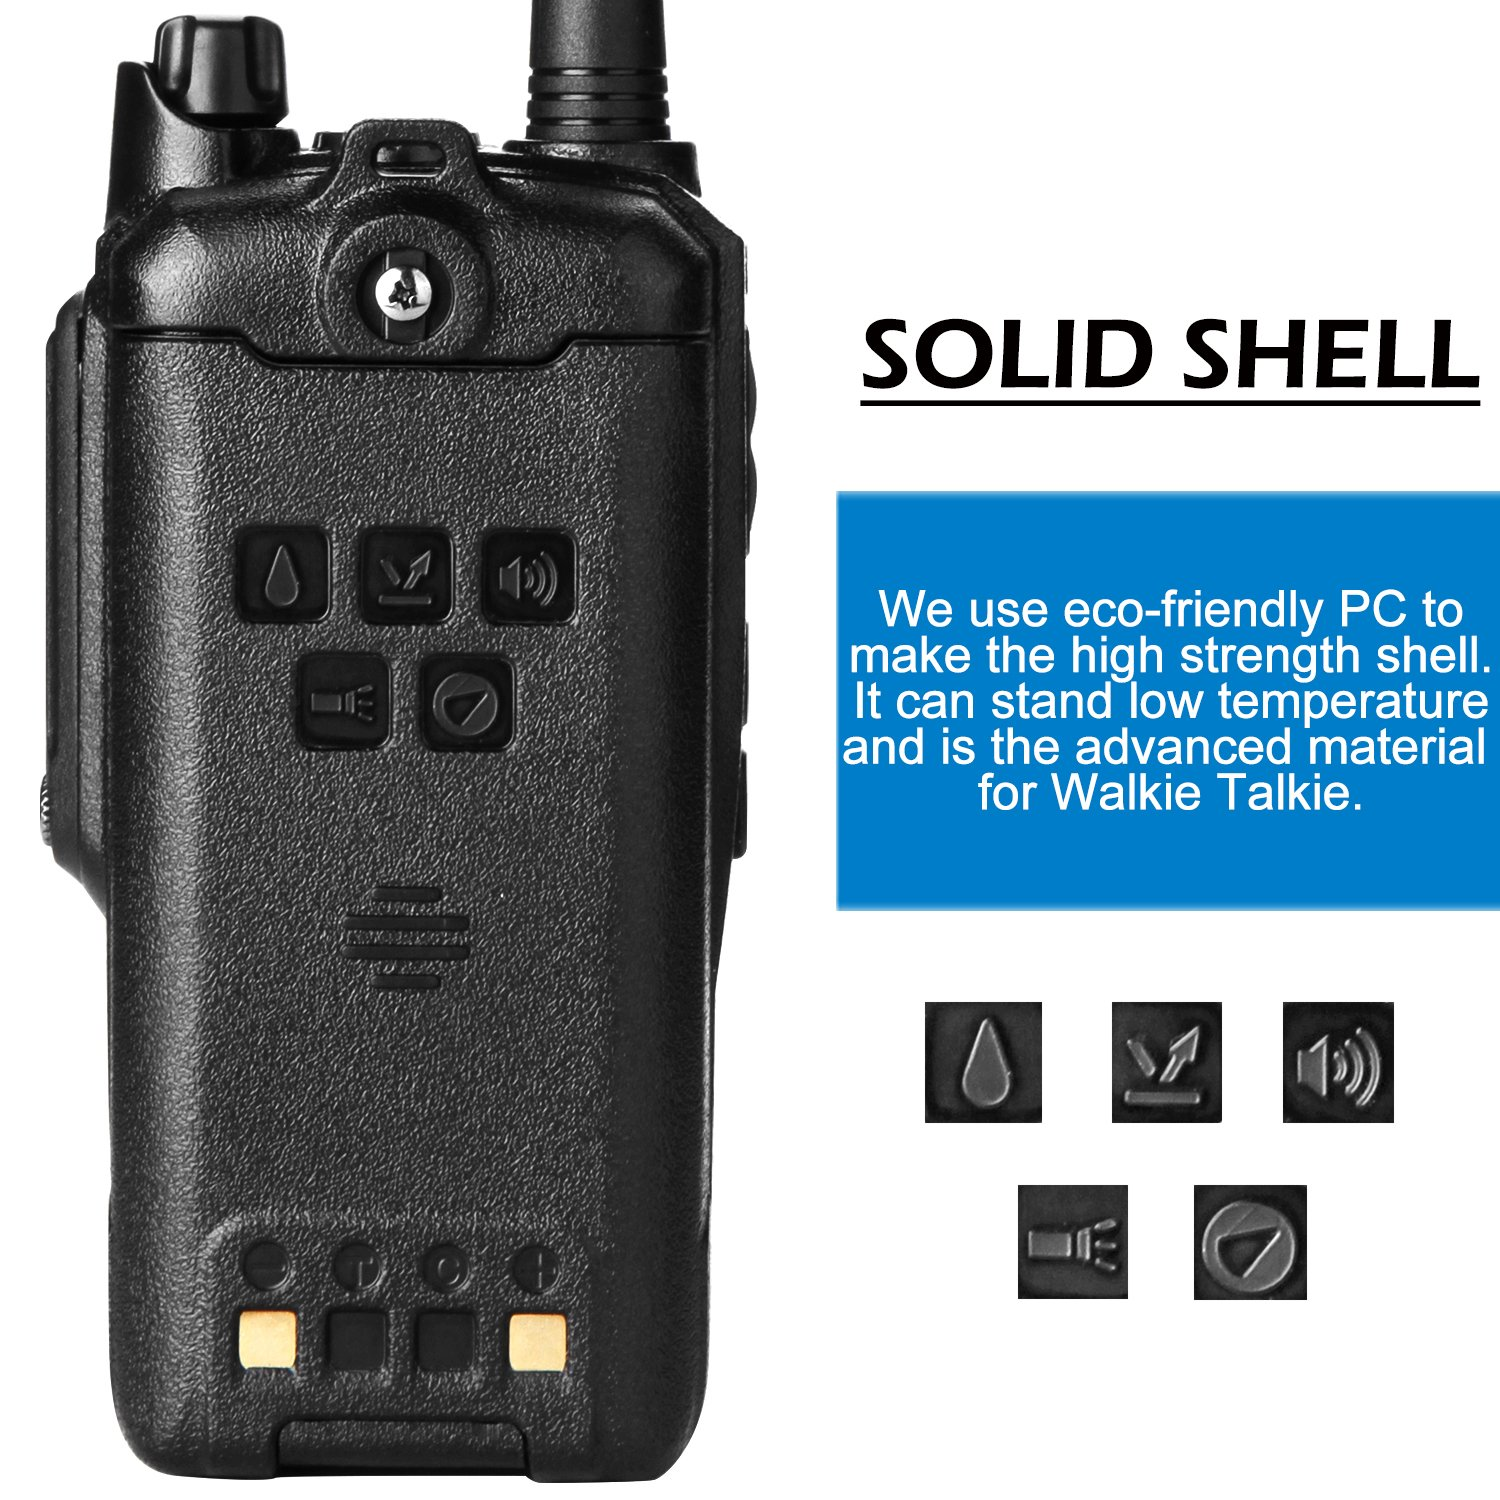 Wireless Radio Transceiver, IP66 Waterproof & Dustproof Two Way Radio Walkie Talkie with Headset/LED Flashlight/Battery/Charger for Indoor & Outdoor Activities by Waltalkie (Image #5)